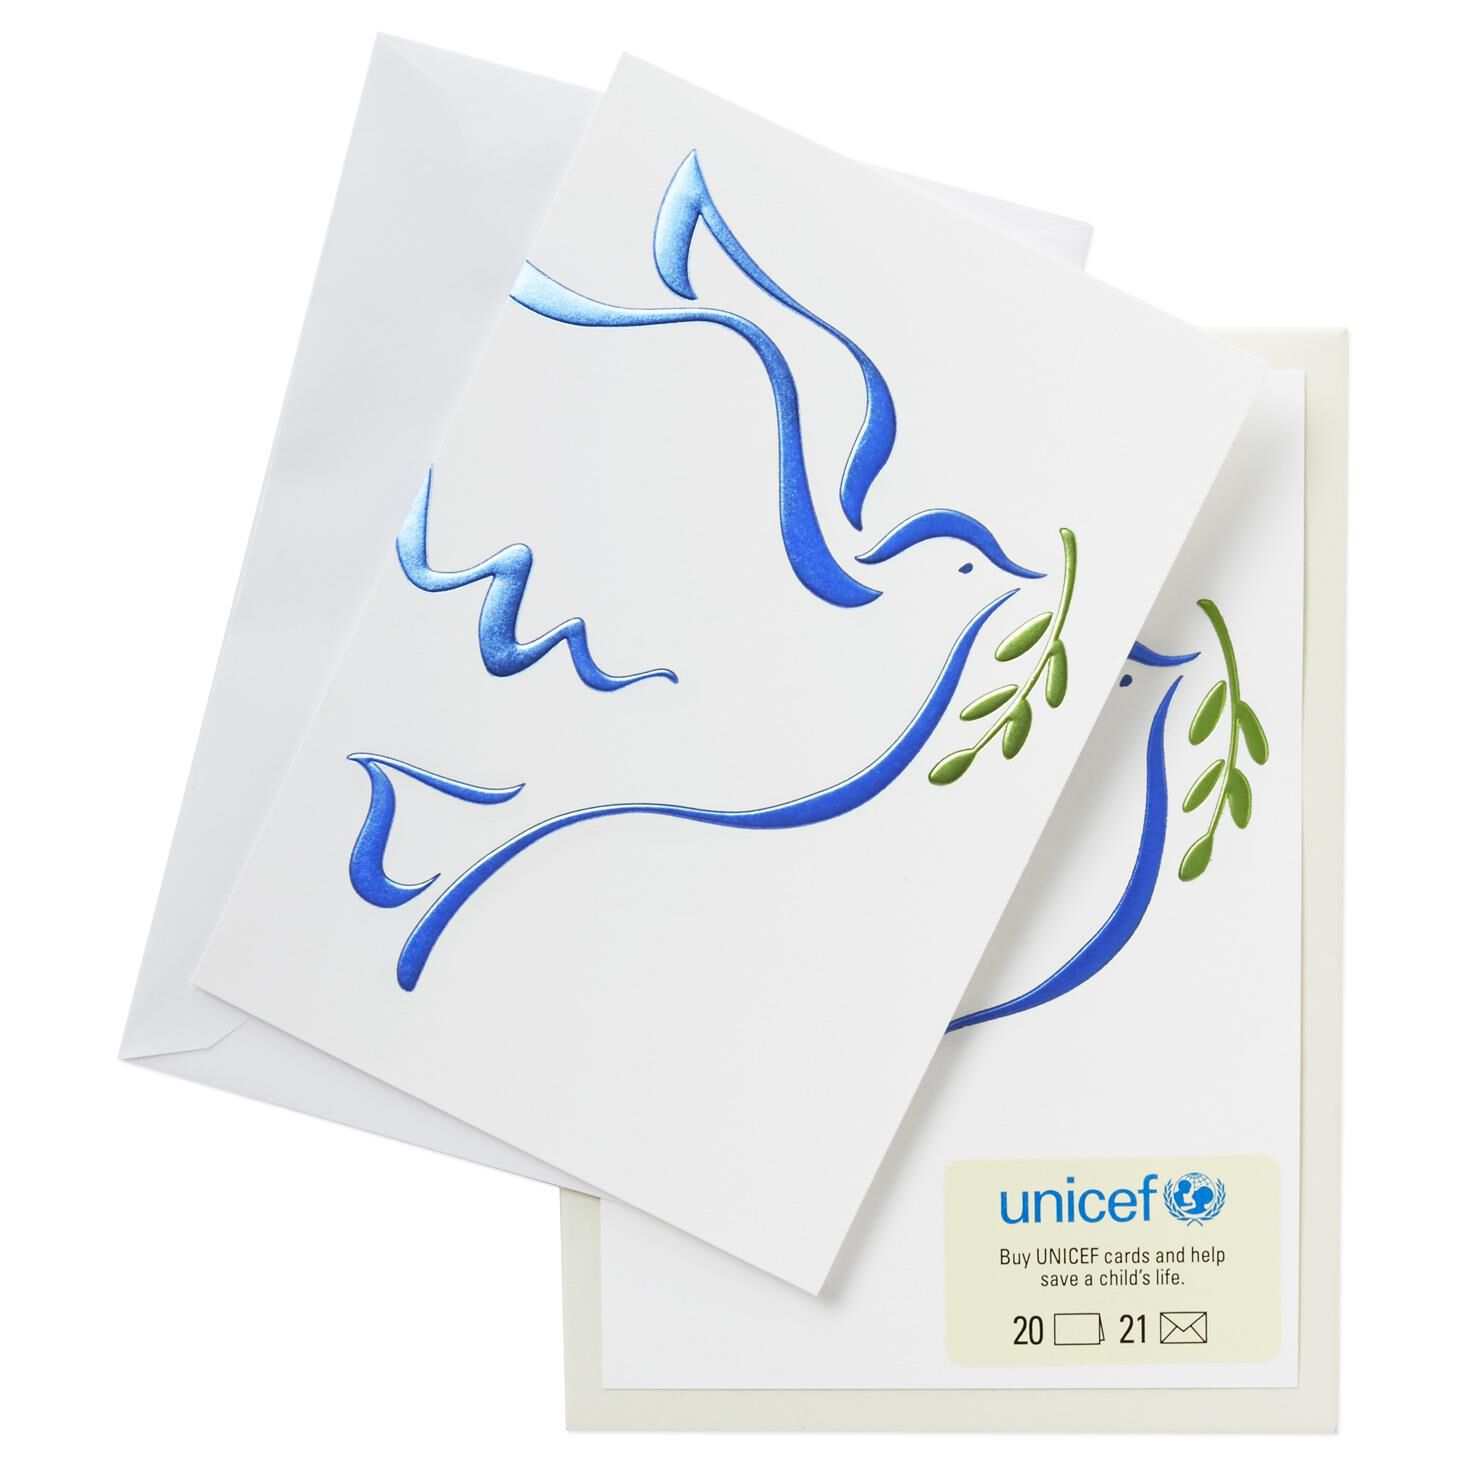 UNICEF Soaring Dove Christmas Cards, Box of 20 - Boxed Cards - Hallmark